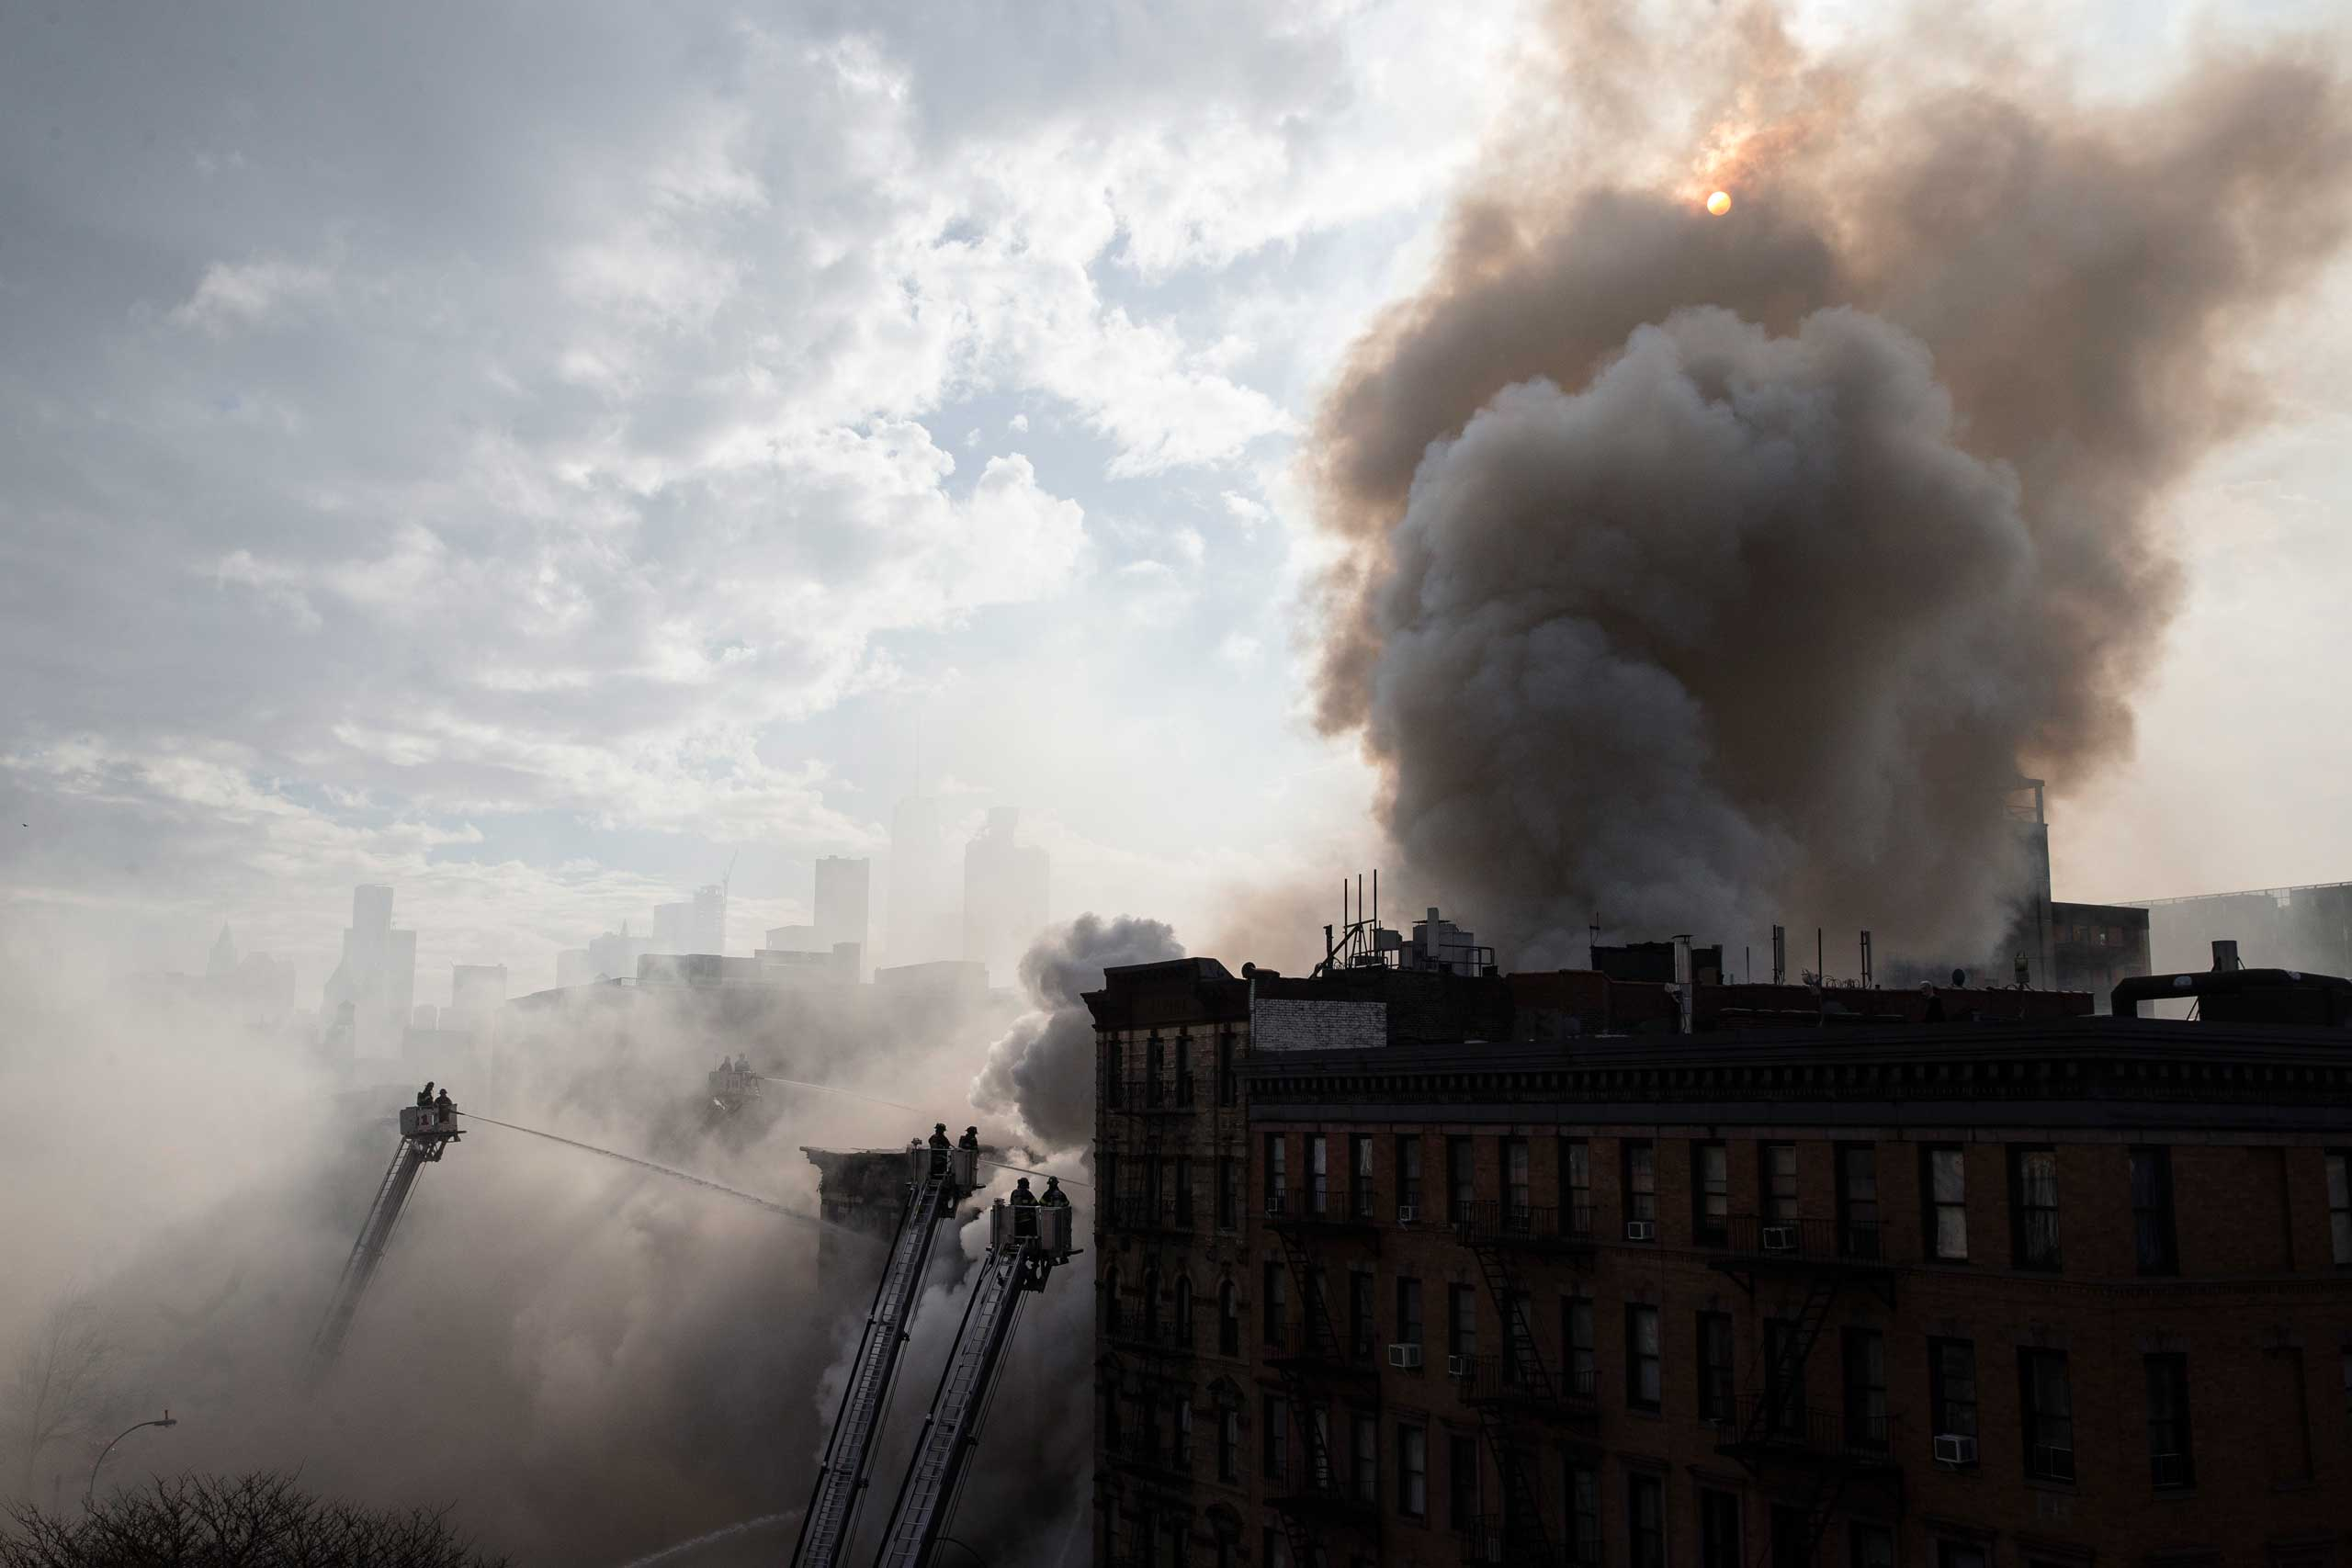 New York City firefighters work the scene of a large fire and a partial building collapse in the East Village neighborhood of New York City on March 26, 2015.